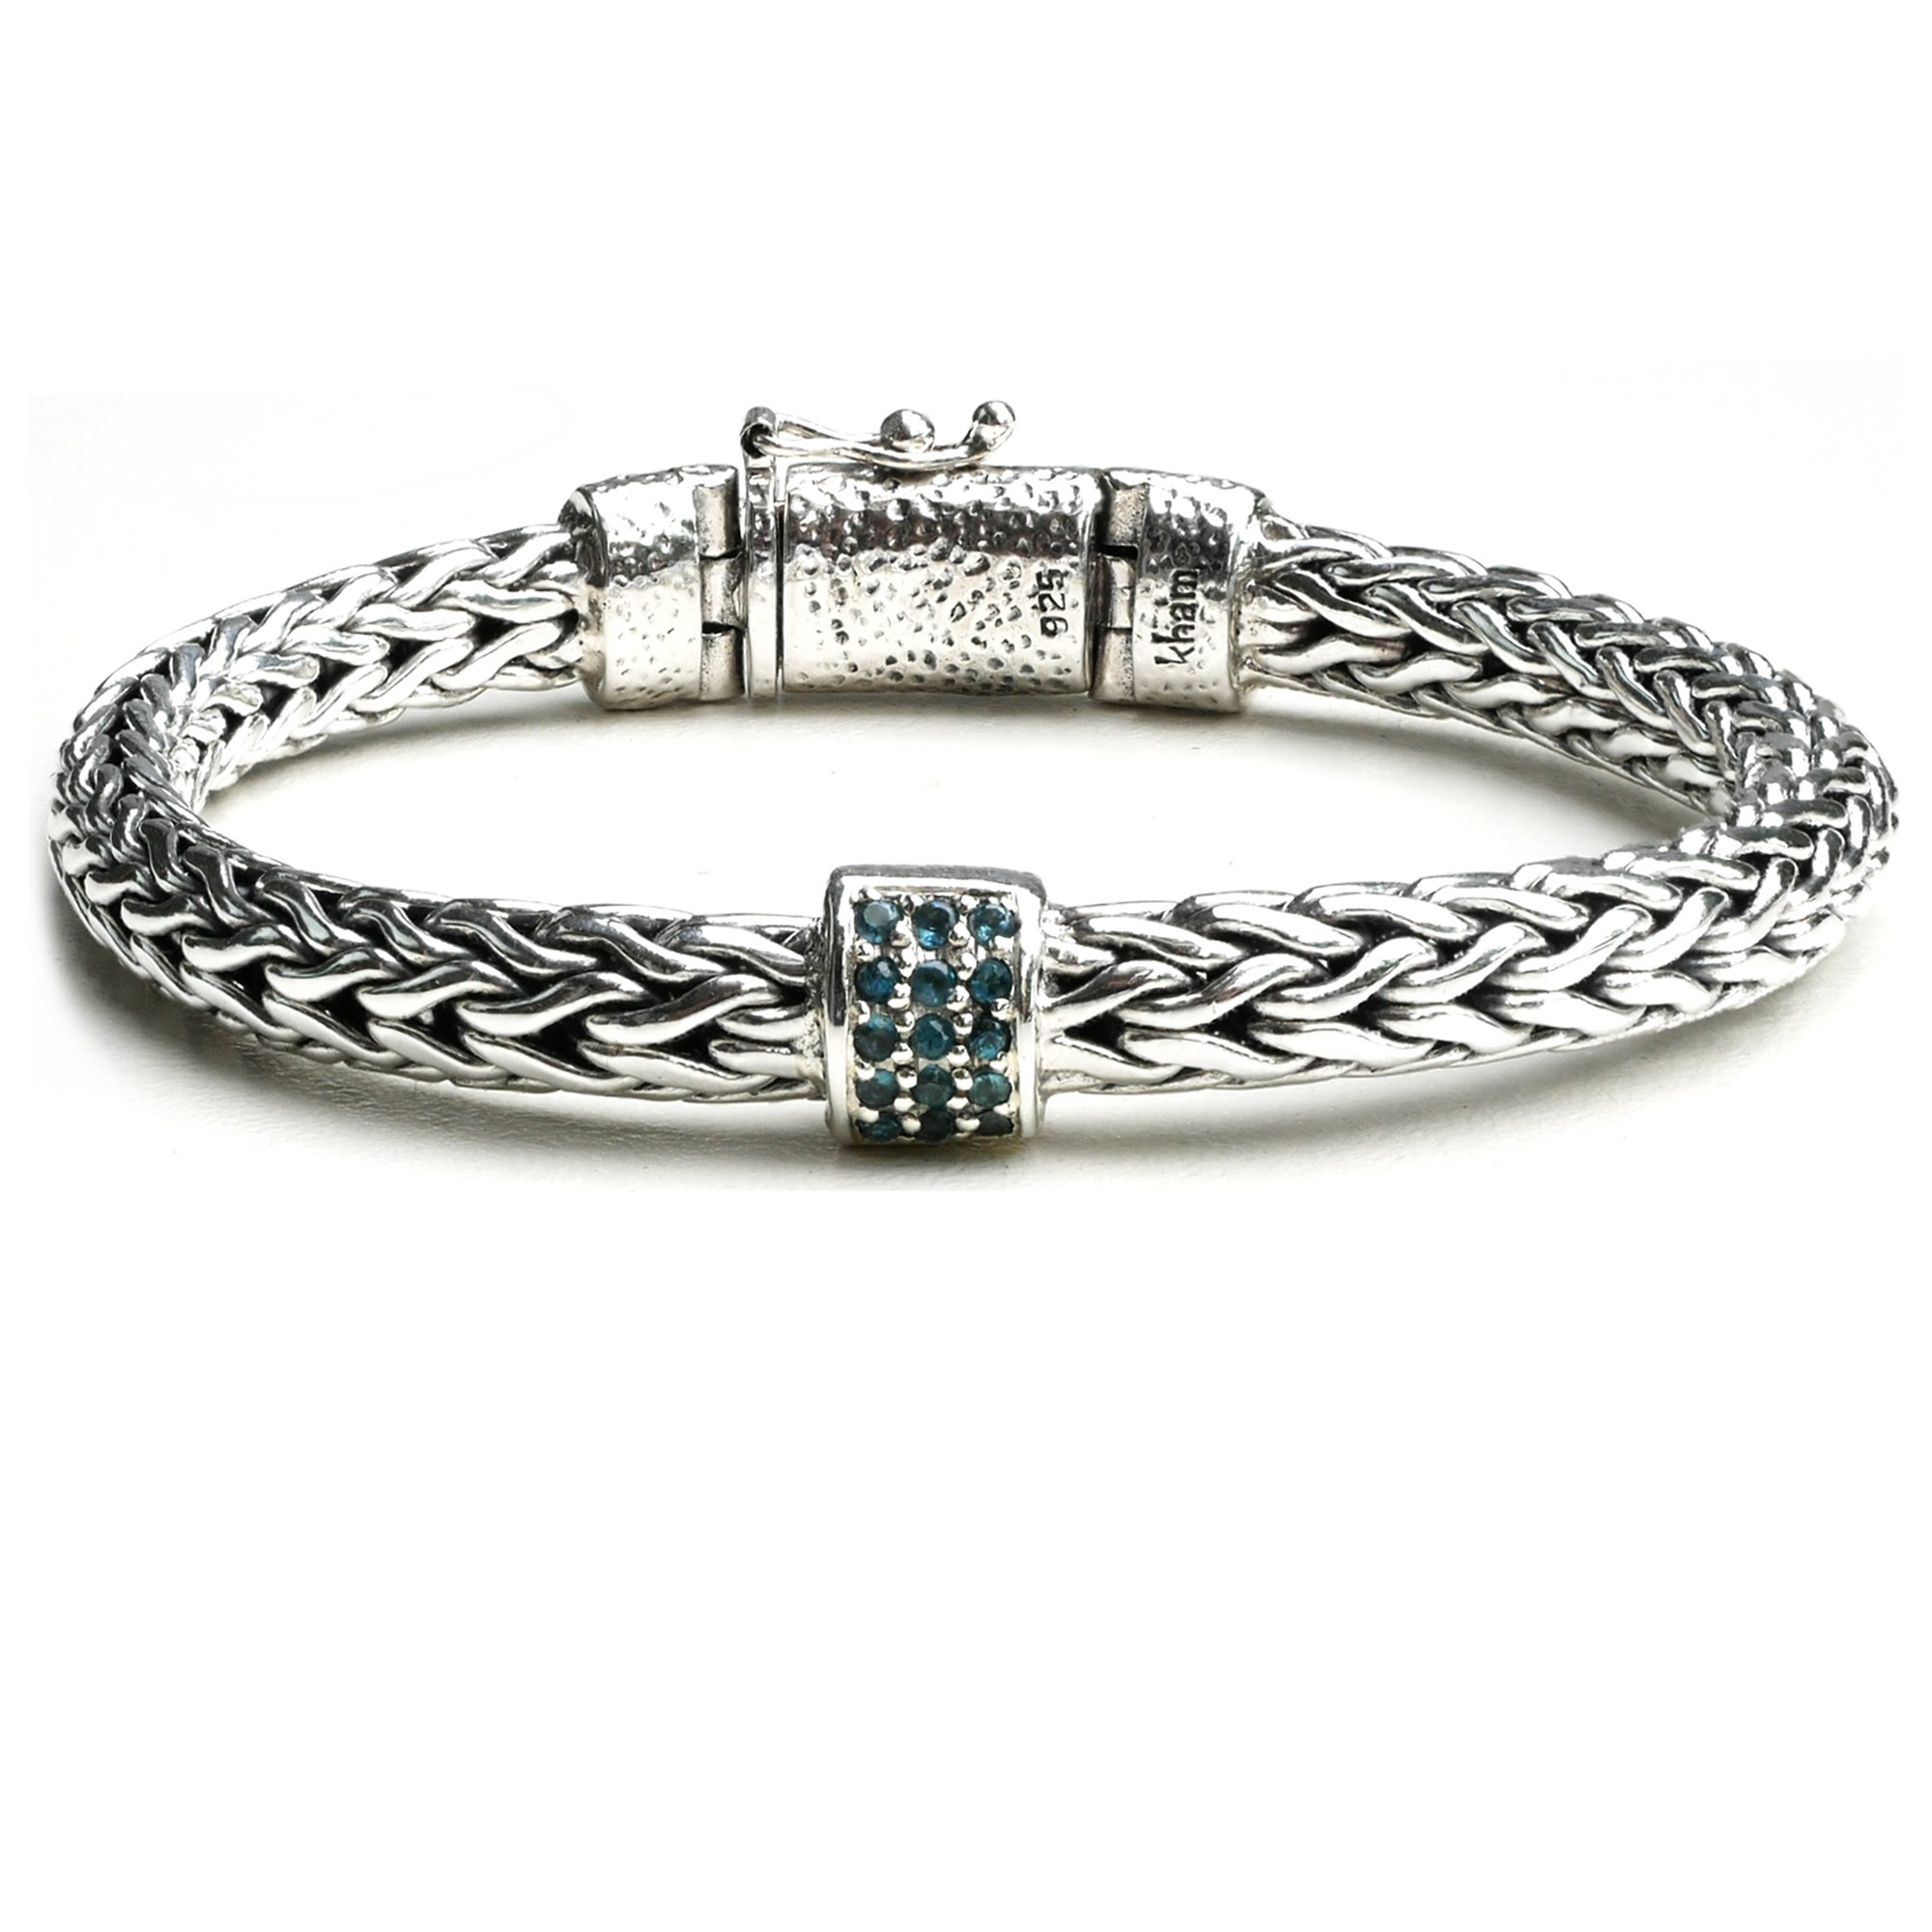 Handcraft Braided Bali Style 925 Sterling Silver with Blue Topaz Station Link Chain Bracelet for Women (7.5)